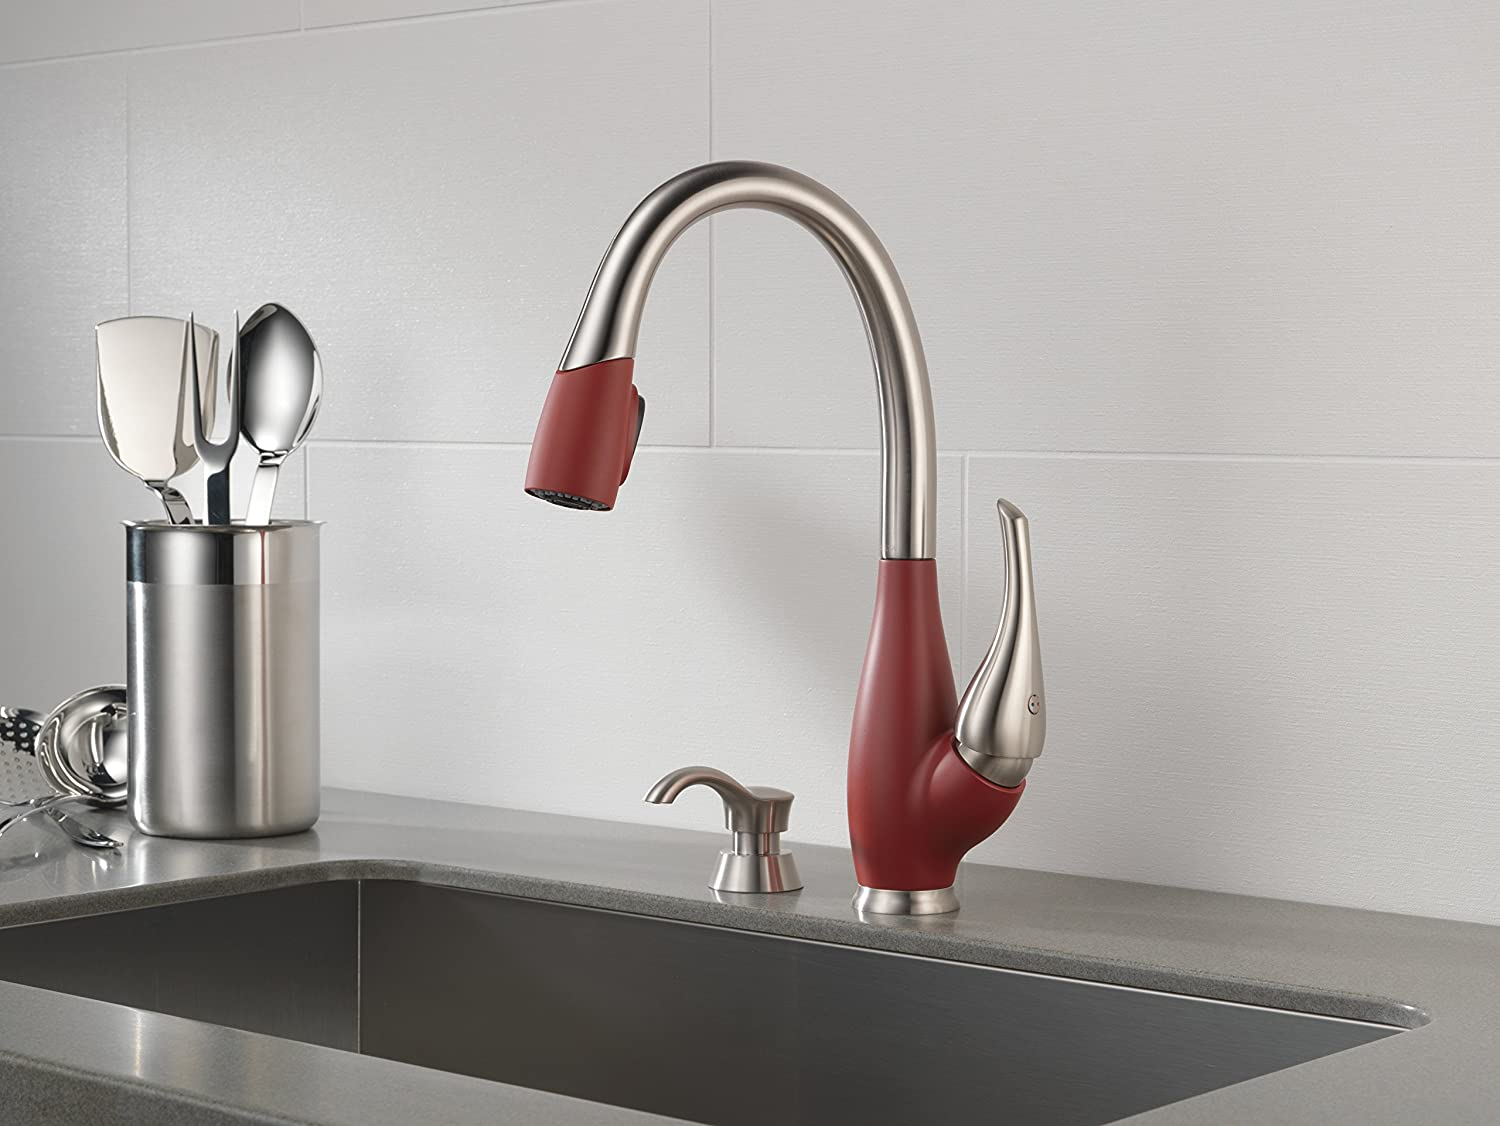 of faucet faucets modern decor affordable photos delta picture home kitchen